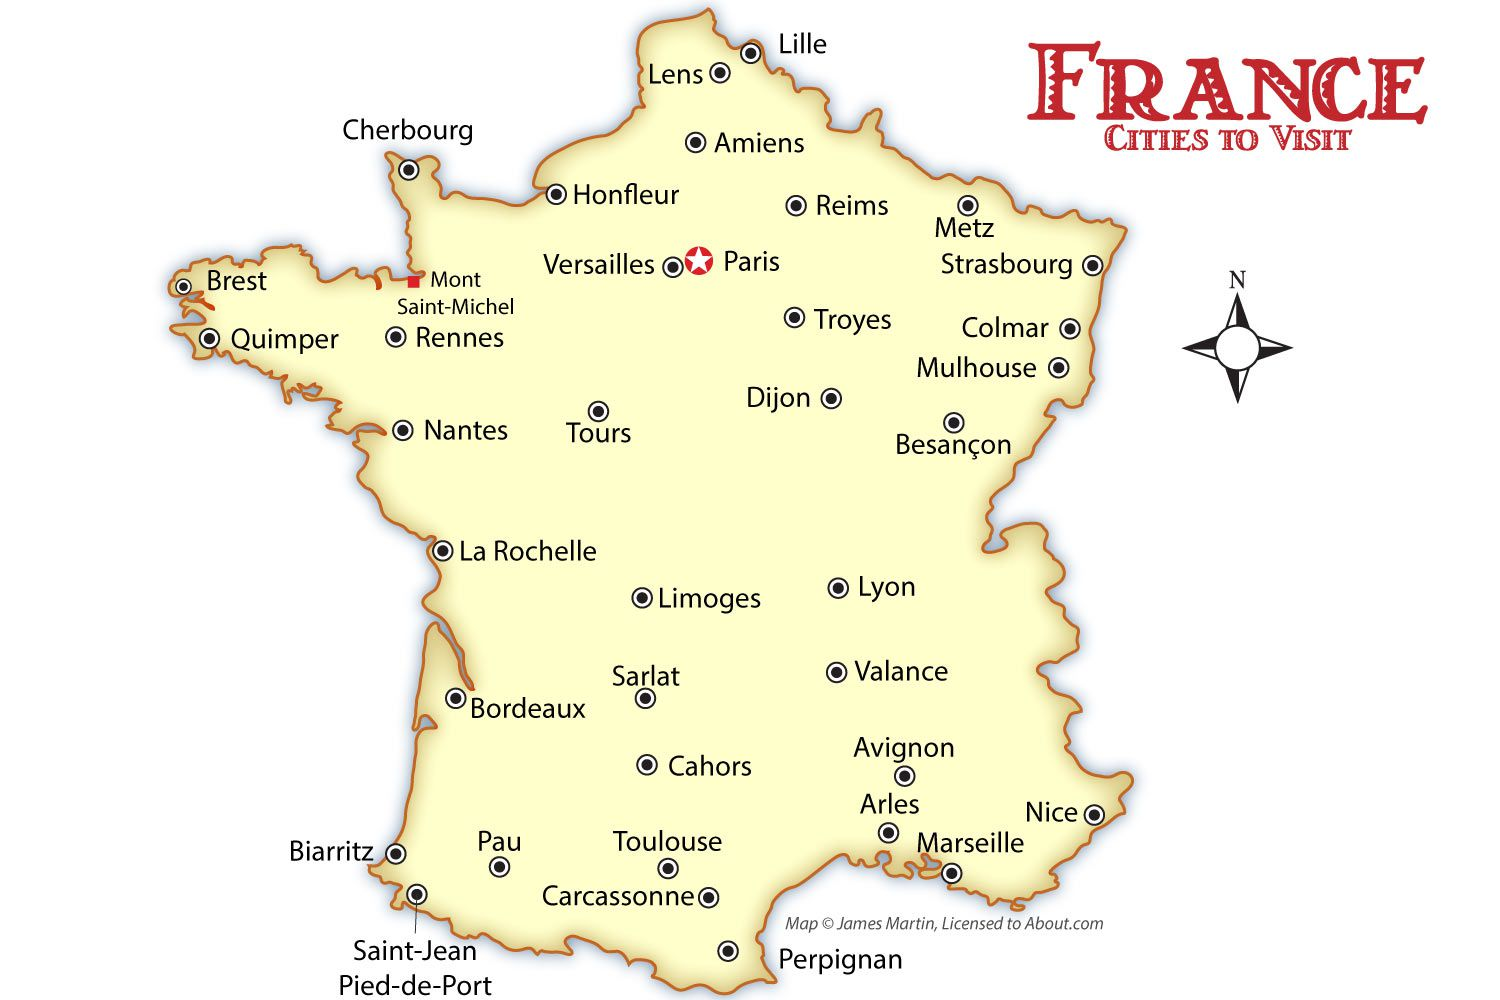 France Cities Map and Travel Guide